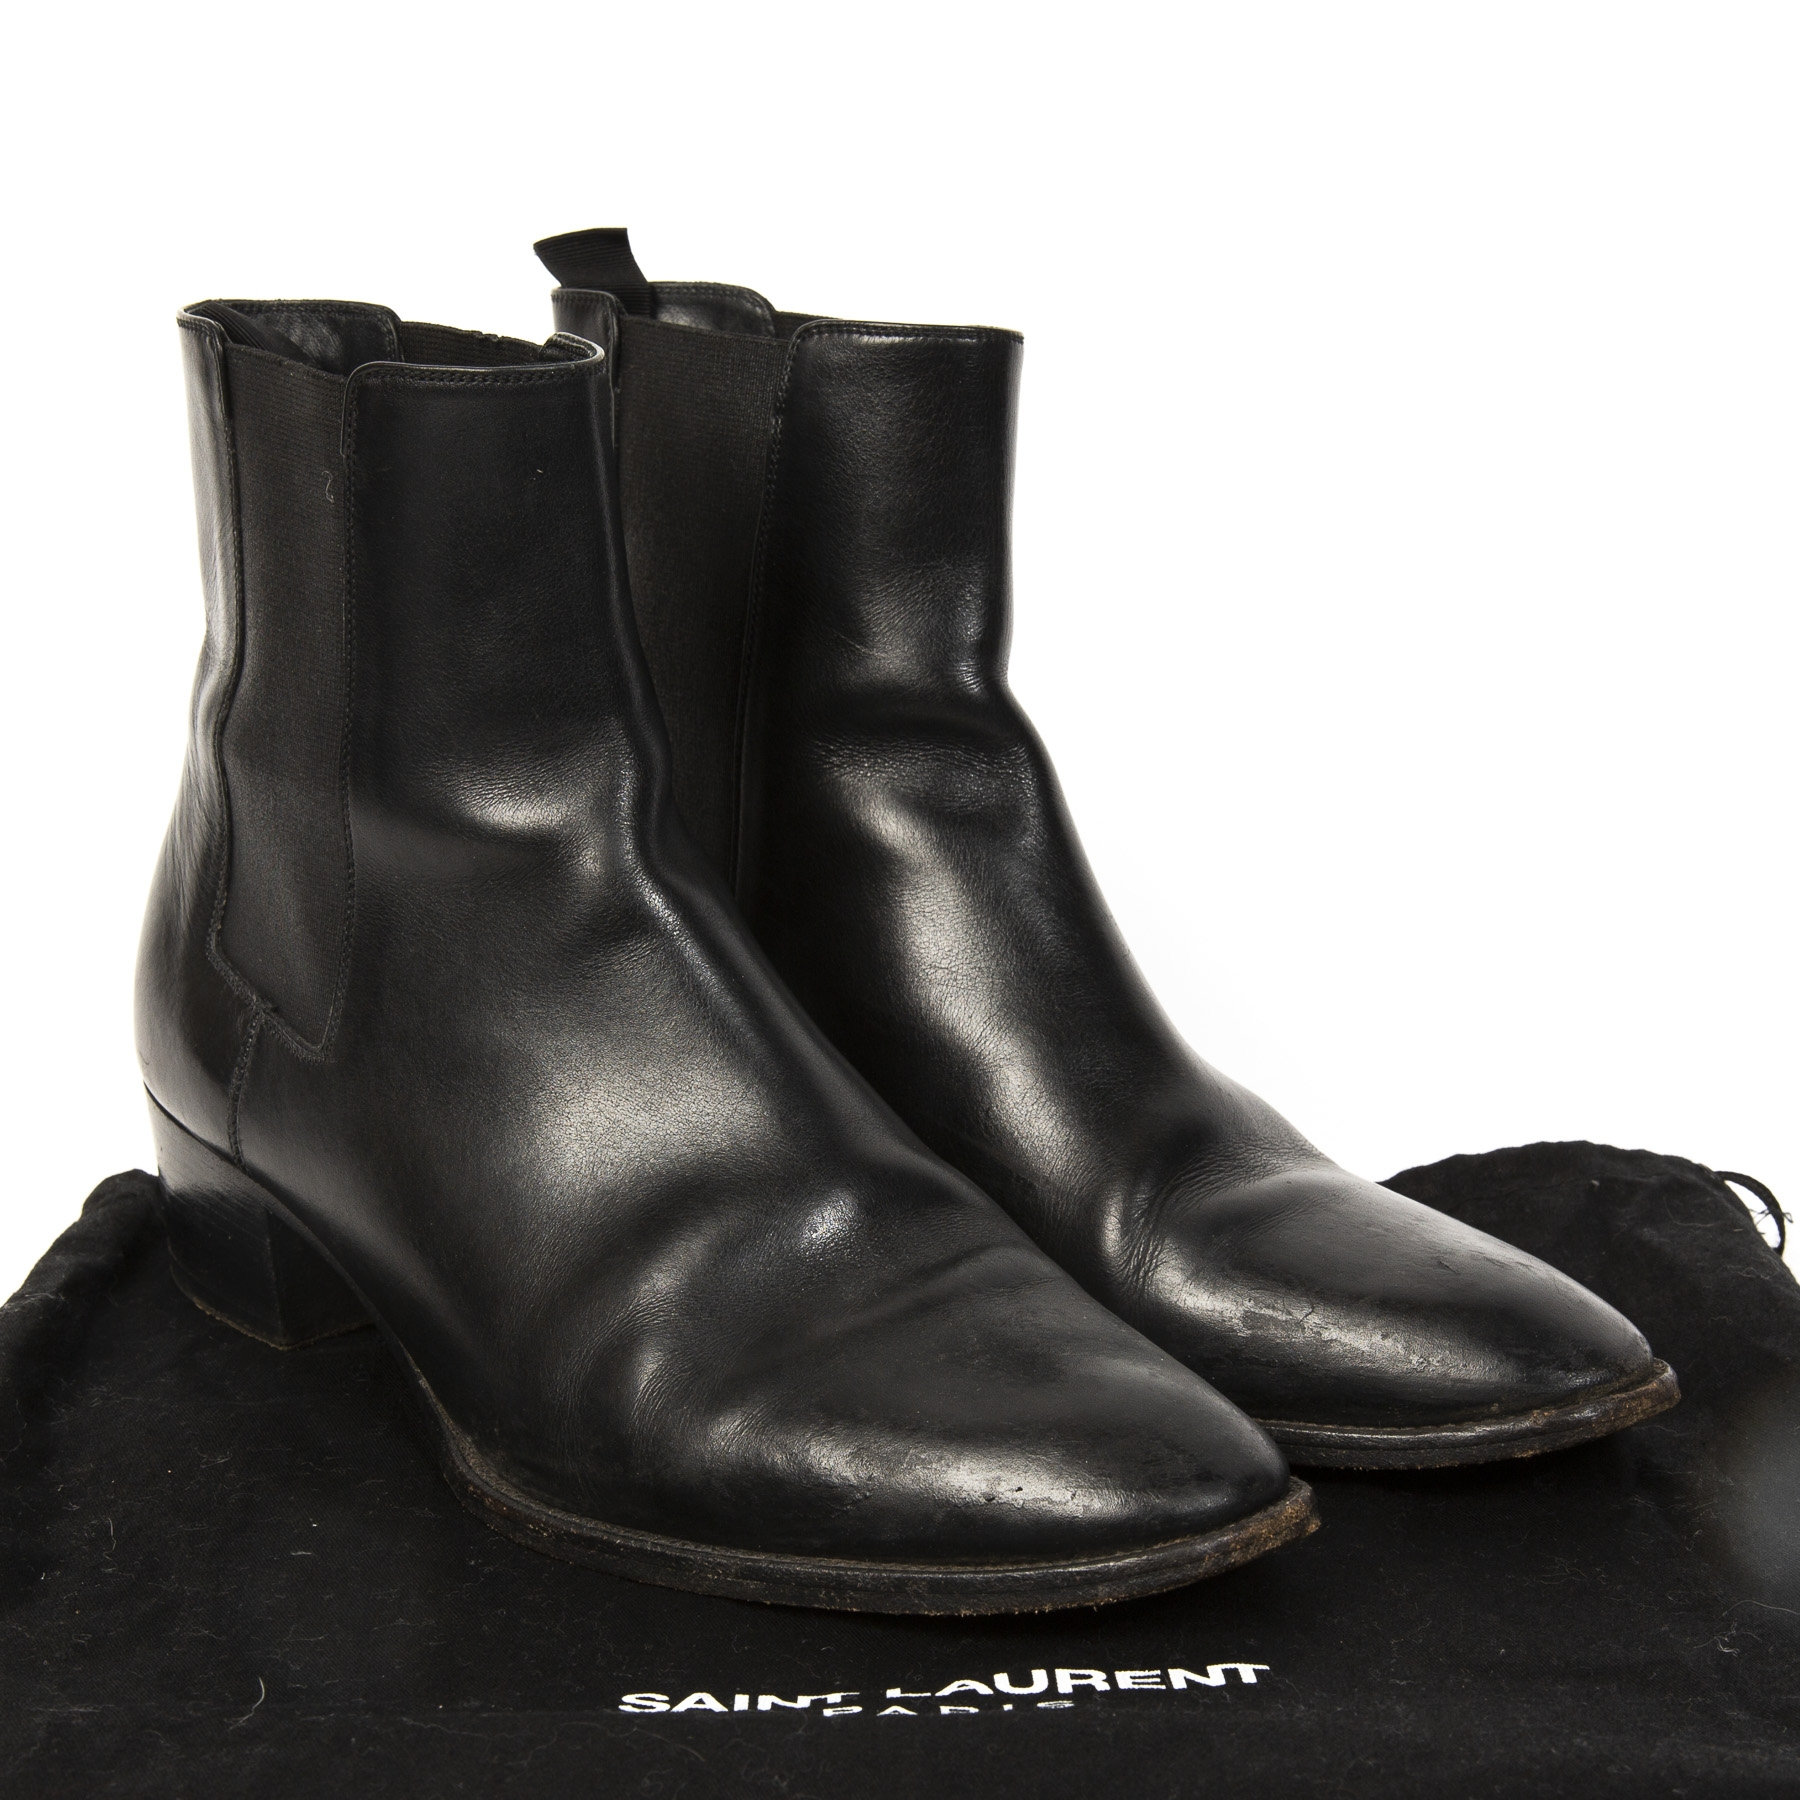 b84bba4e1ae Buy authentic designer YSL secondhand shoes Yves Saint Laurent Black Ankle  Boots - Size 39. Buy authentic designer YSL secondhand shoes